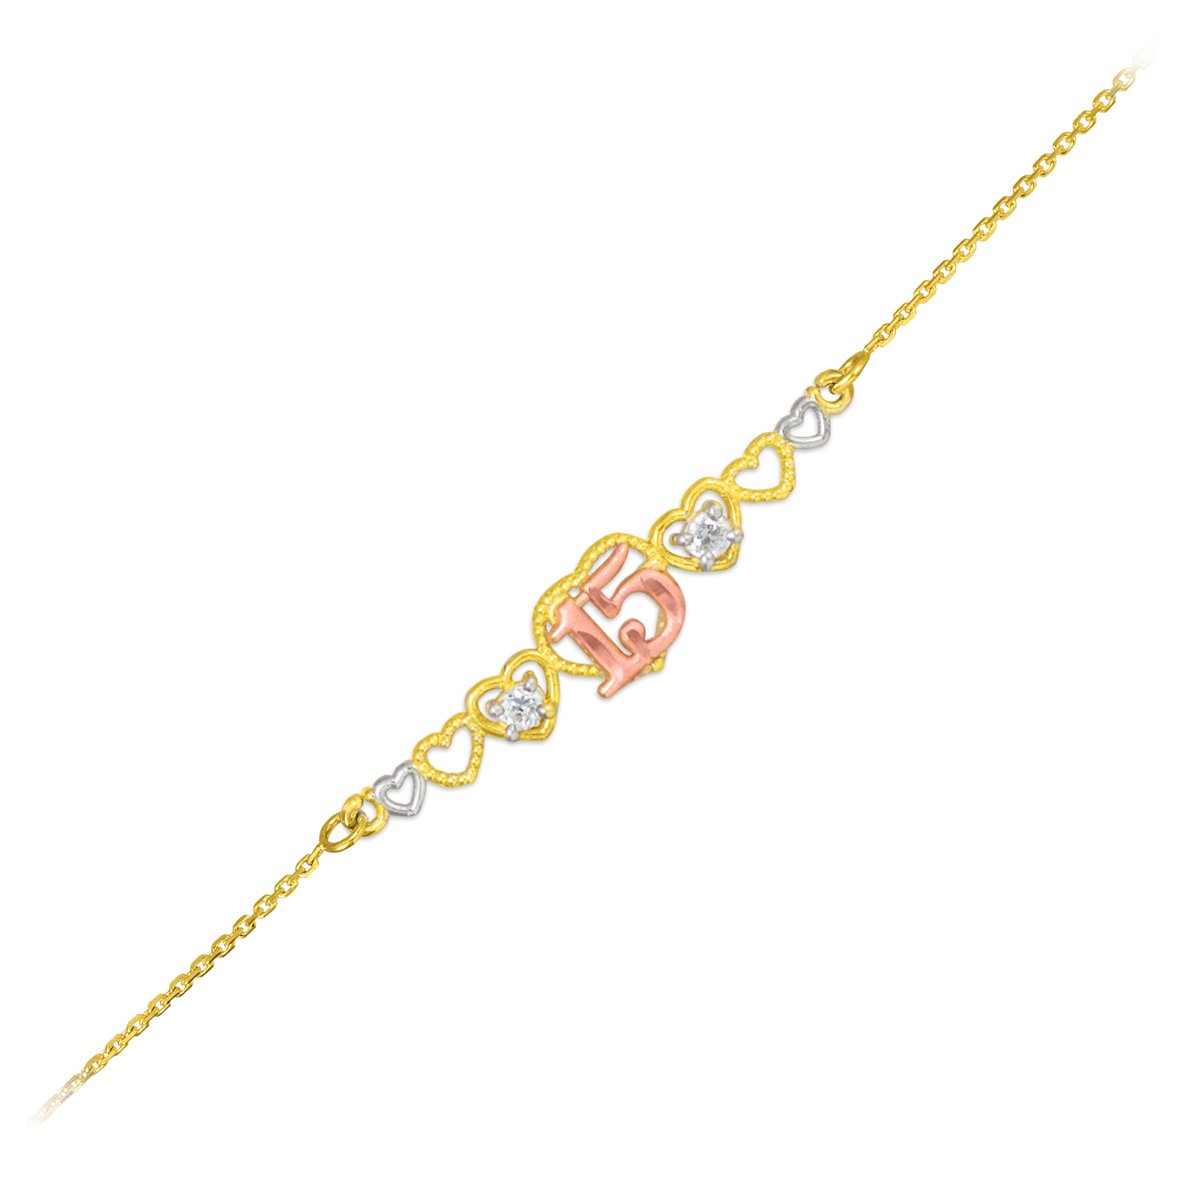 14k Tri-Color Gold Sweet 15 Anos Quinceanera Hearts Bracelet 7'' With 0.5'' Extension